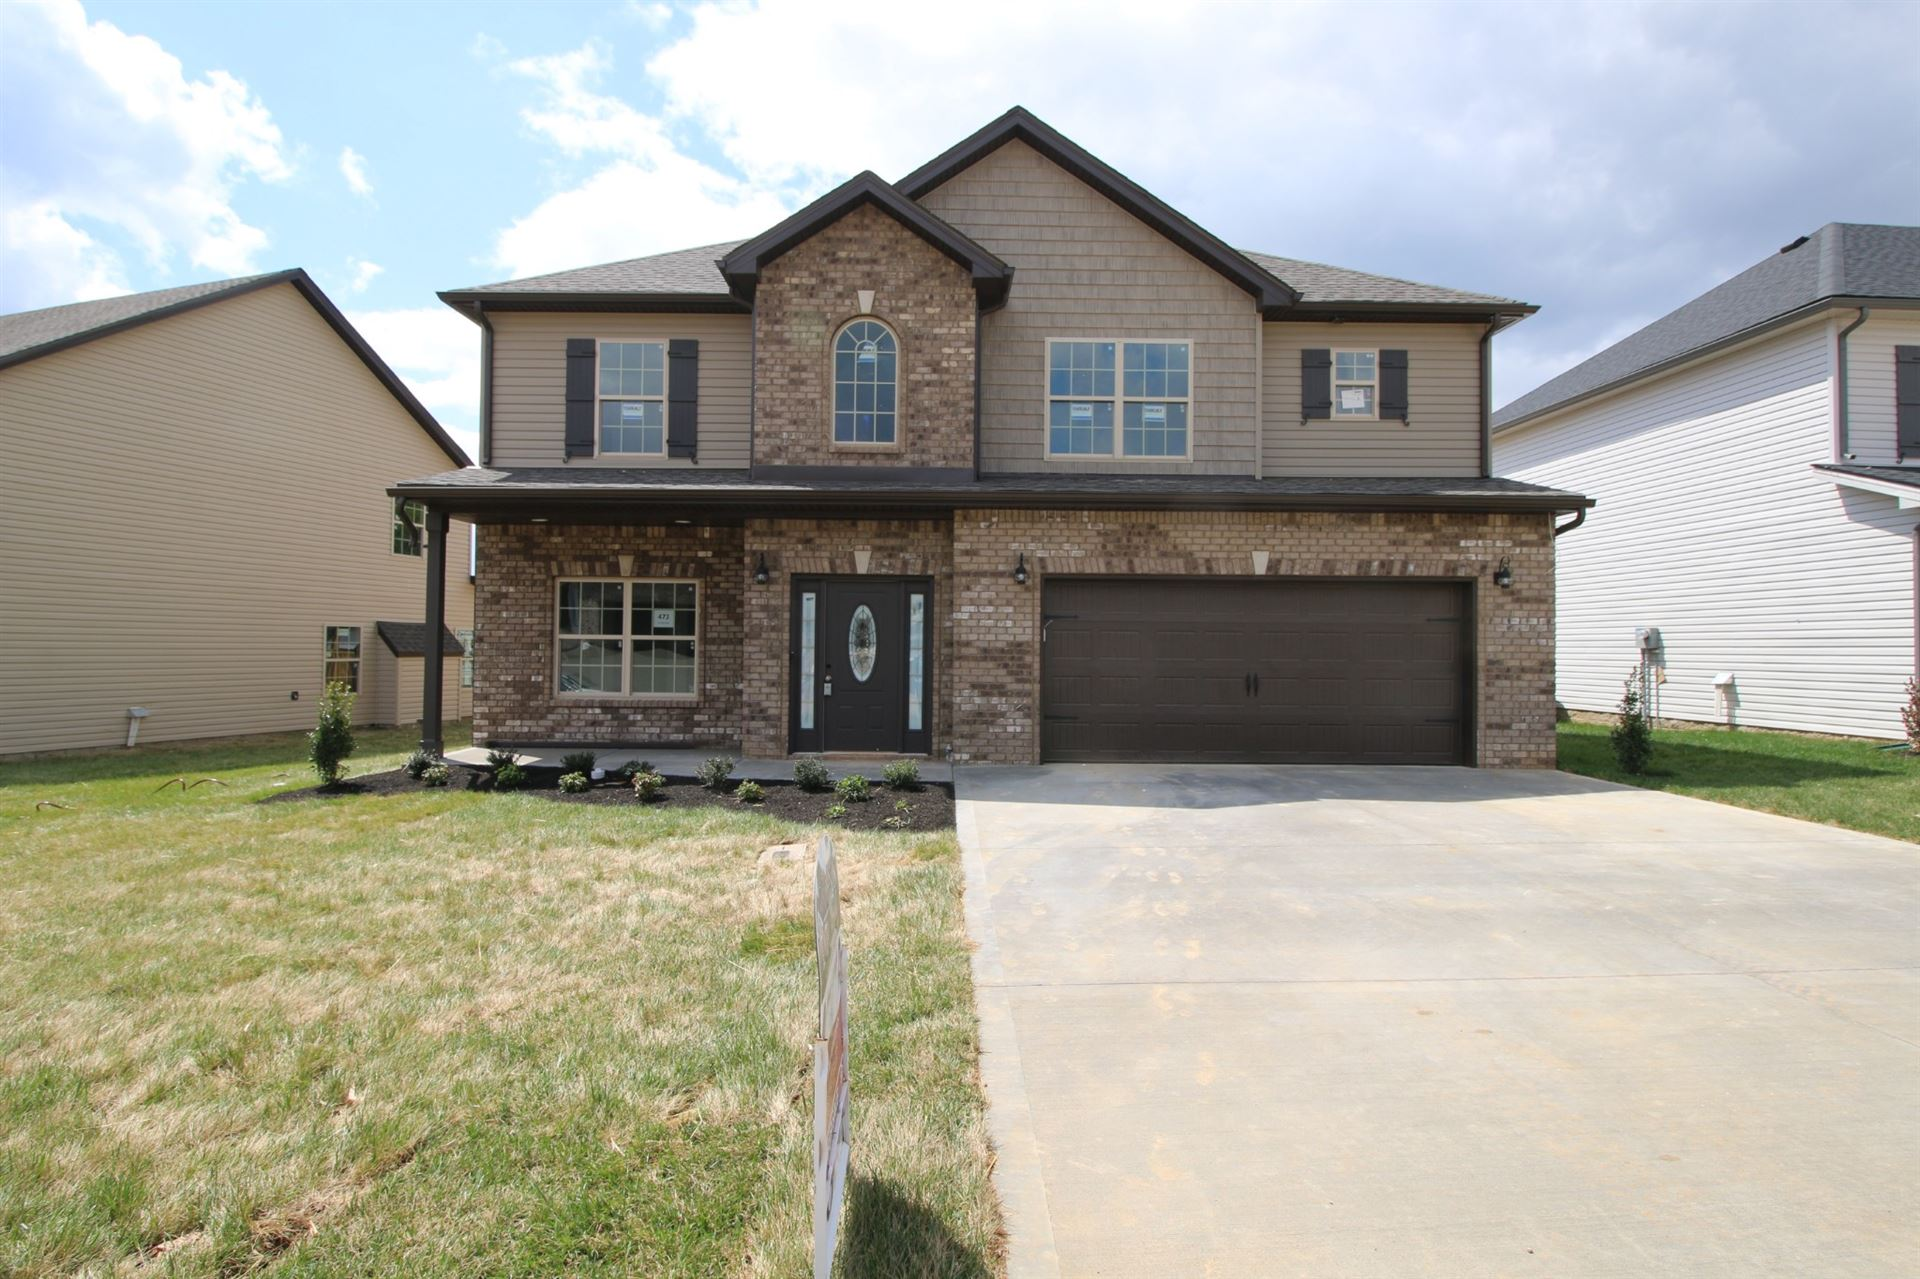 473 Autumn Creek, Clarksville, TN 37042 - MLS#: 2220293